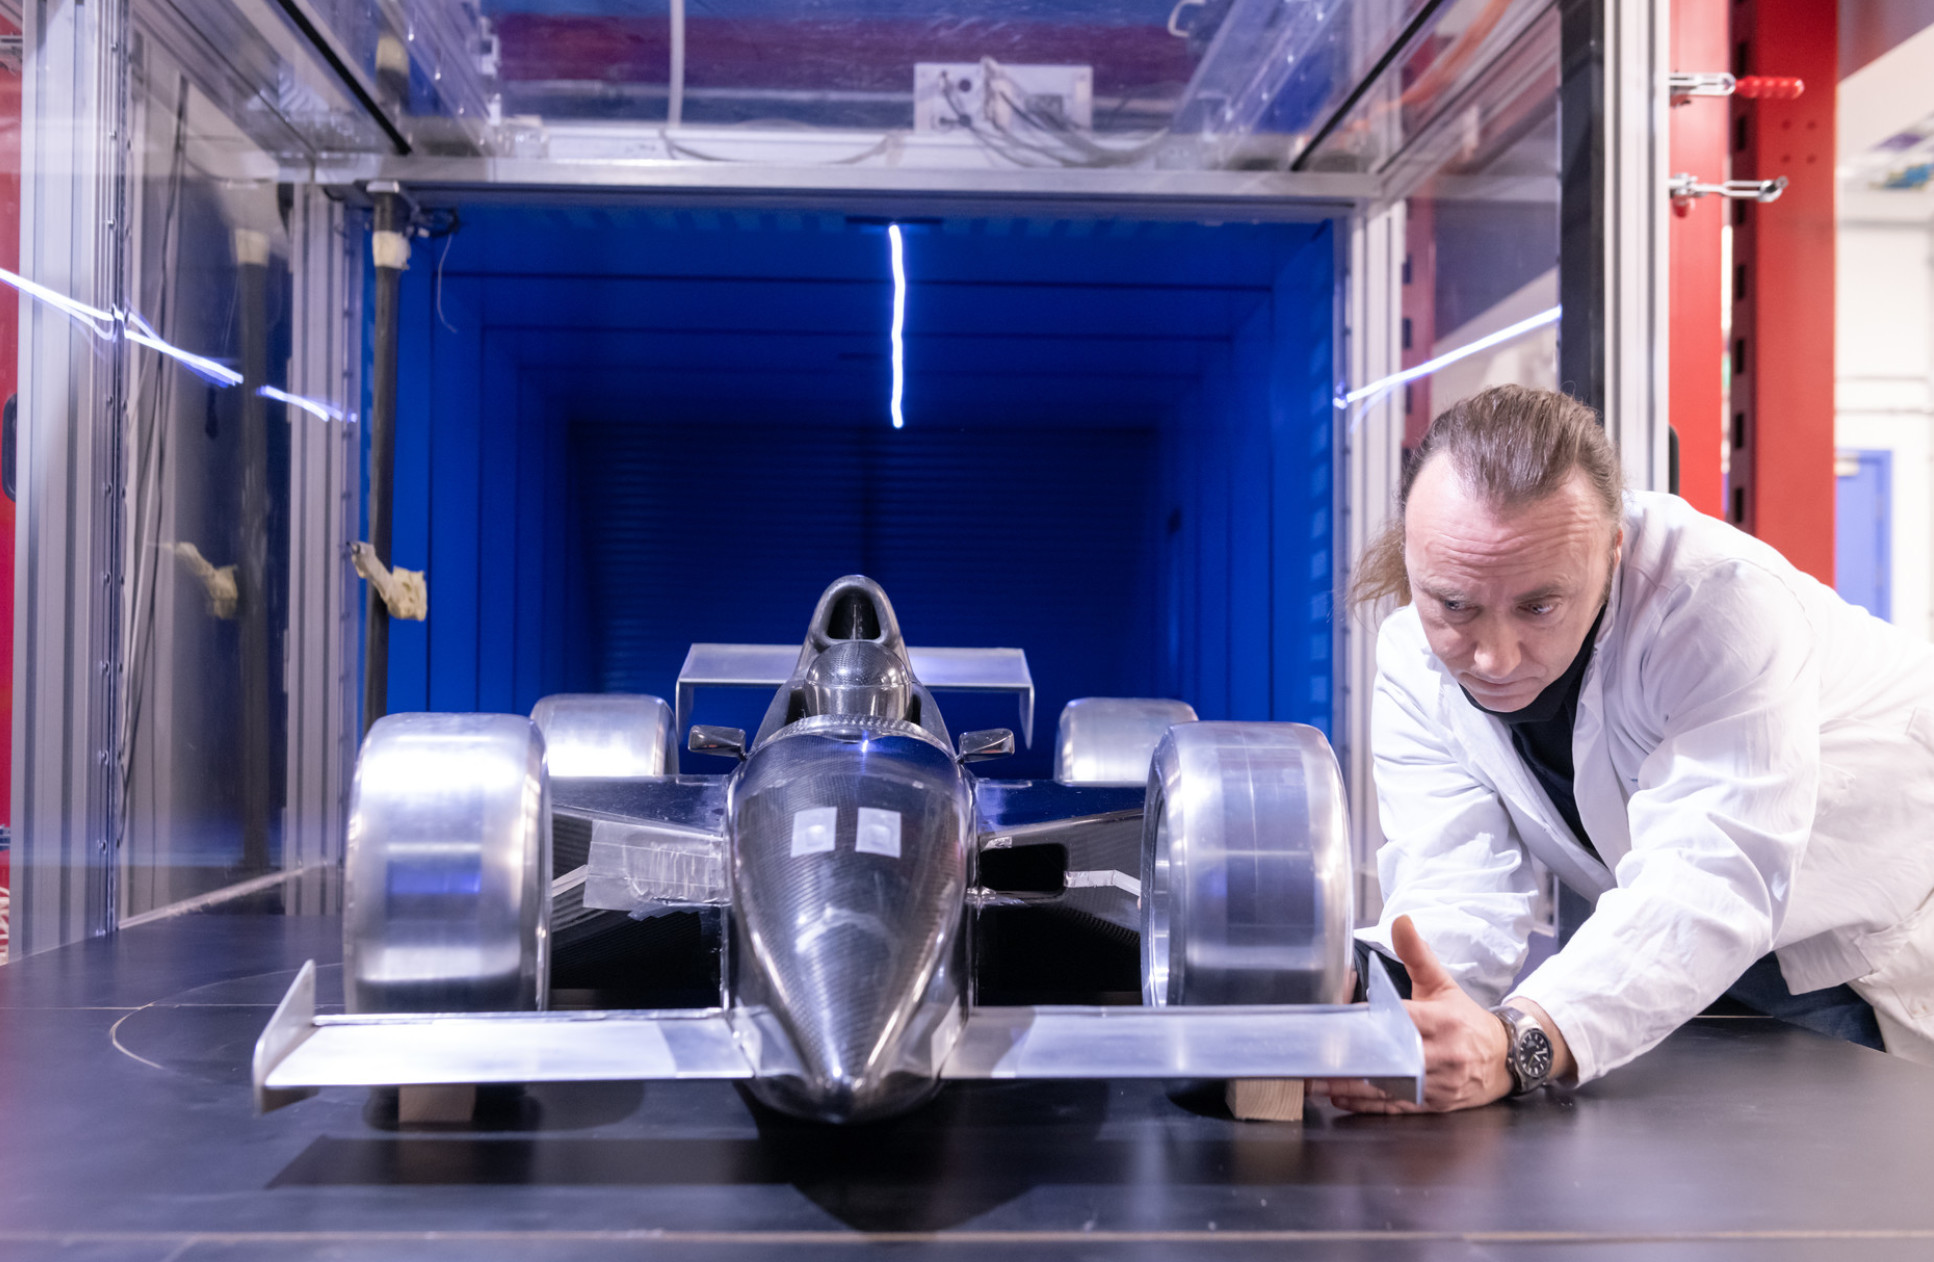 Wind tunnel research at Imperial